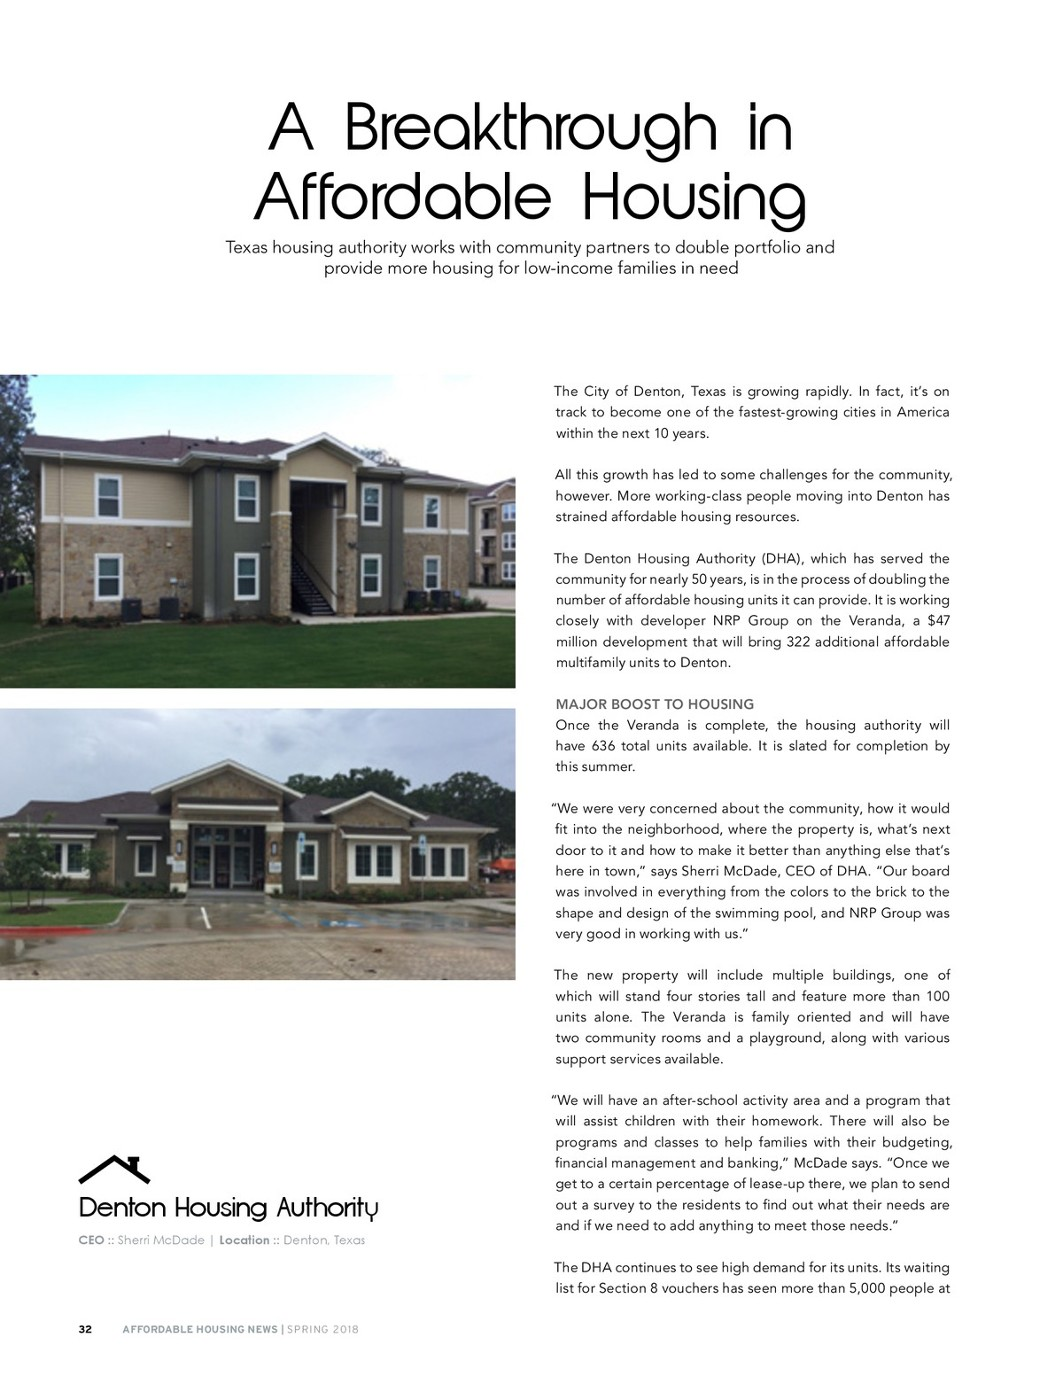 Affordable Housing News, Spring 2018 issue